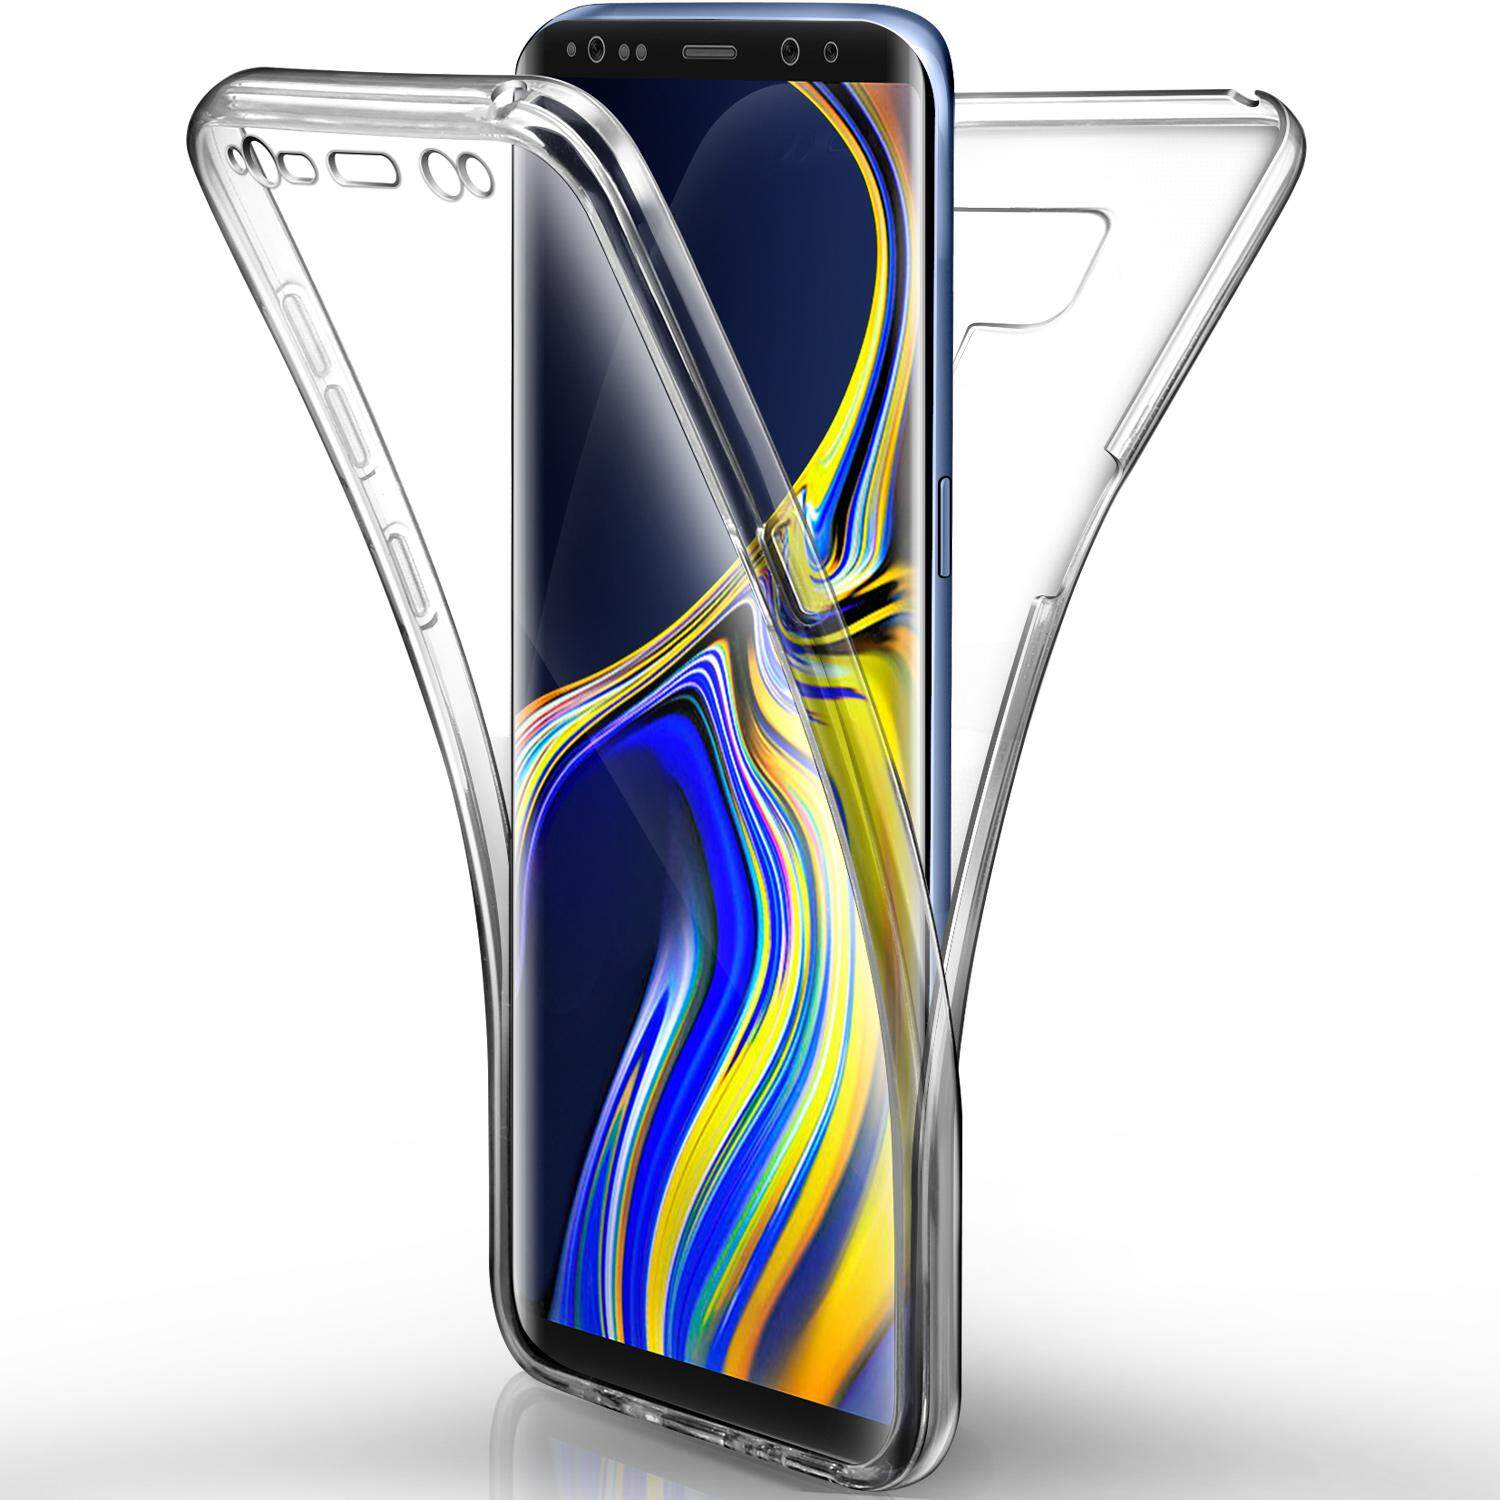 Buy Phone Cases Accessories Spigen Galaxy Note 9 Case Ultra Hybrid Clear Original Casing Rymall For Samsung Full Coverage Front And Back Shockproof Tpu 360 Degree